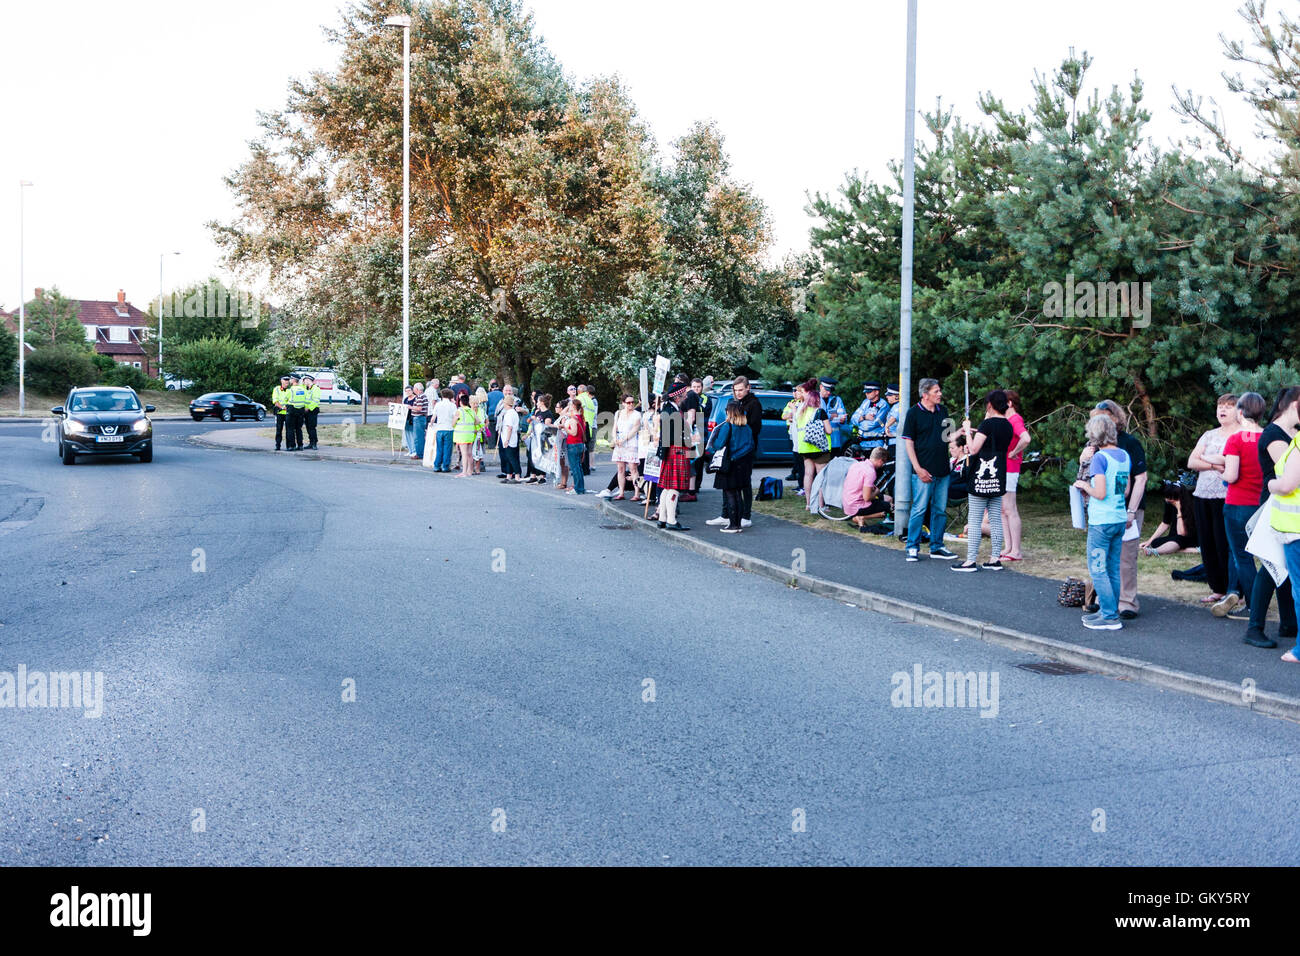 'Ban live exports' protestors standing on side of main road into Ramsgate during peaceful demonstration - Stock Image